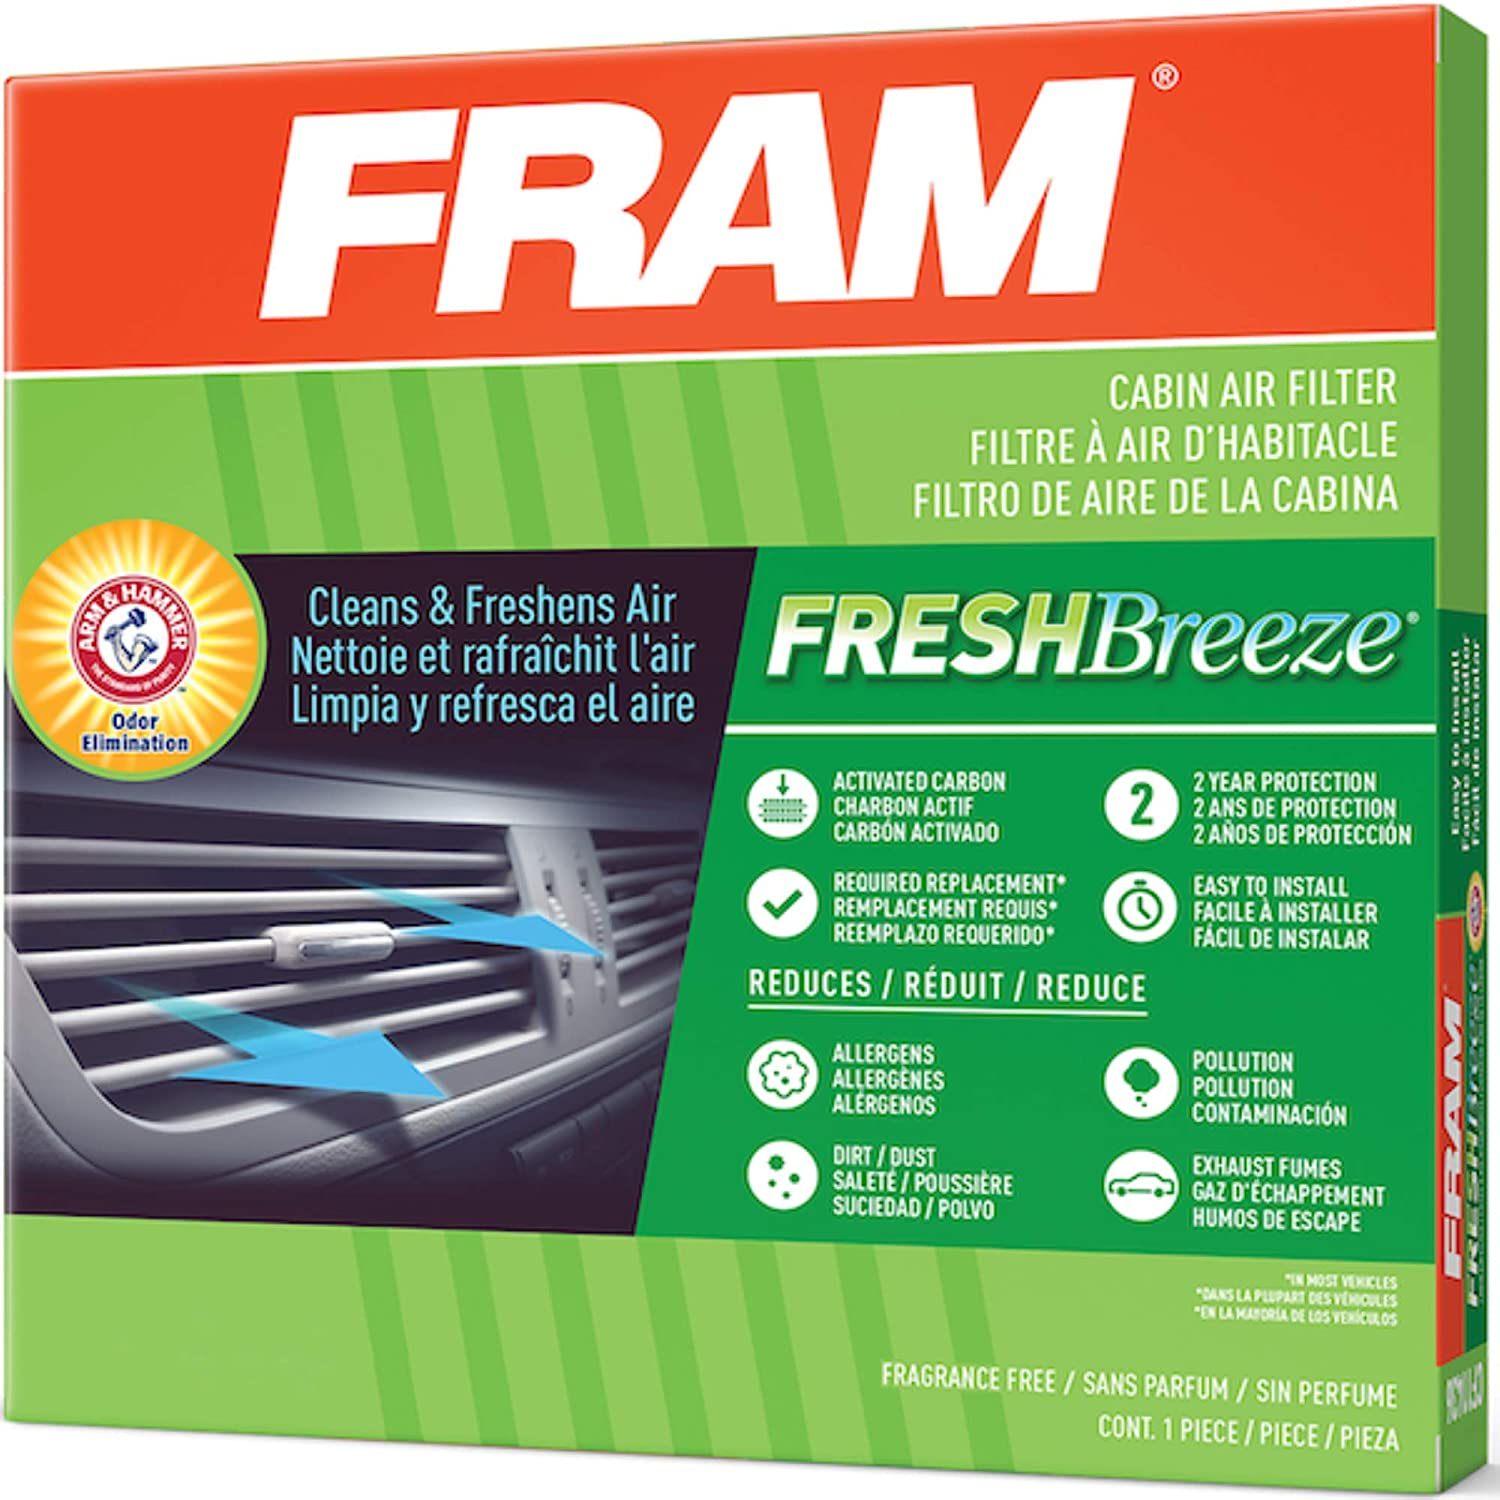 FRAM Fresh Breeze Cabin Air Filter with Arm & Hammer Baking Soda, CF10373 for Audi/Volkswagen Vehicles